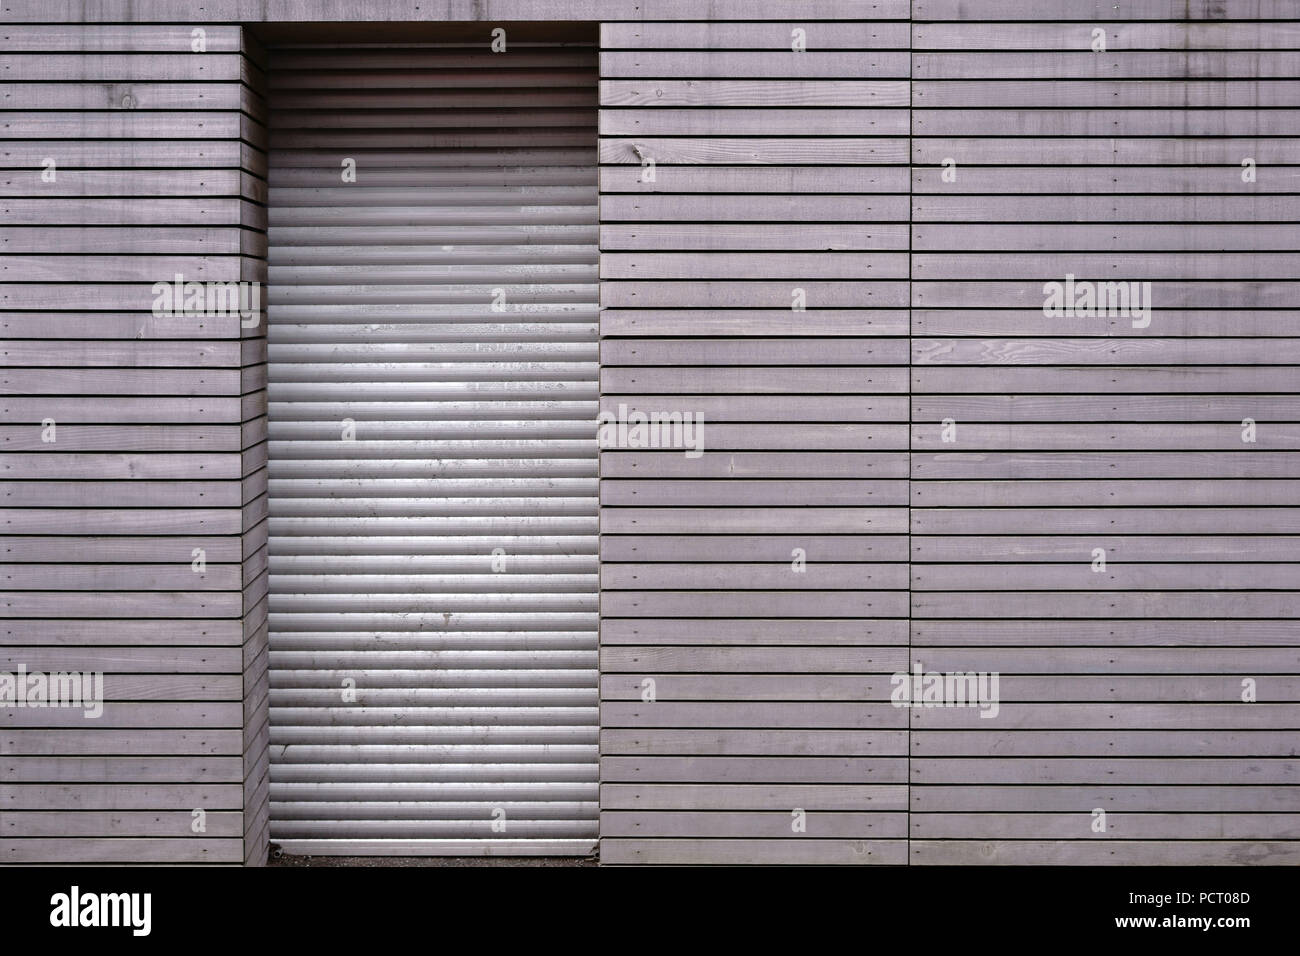 Close Up Of The Wooden Paneling Of A Wall Of A Closed Shop With Lowered